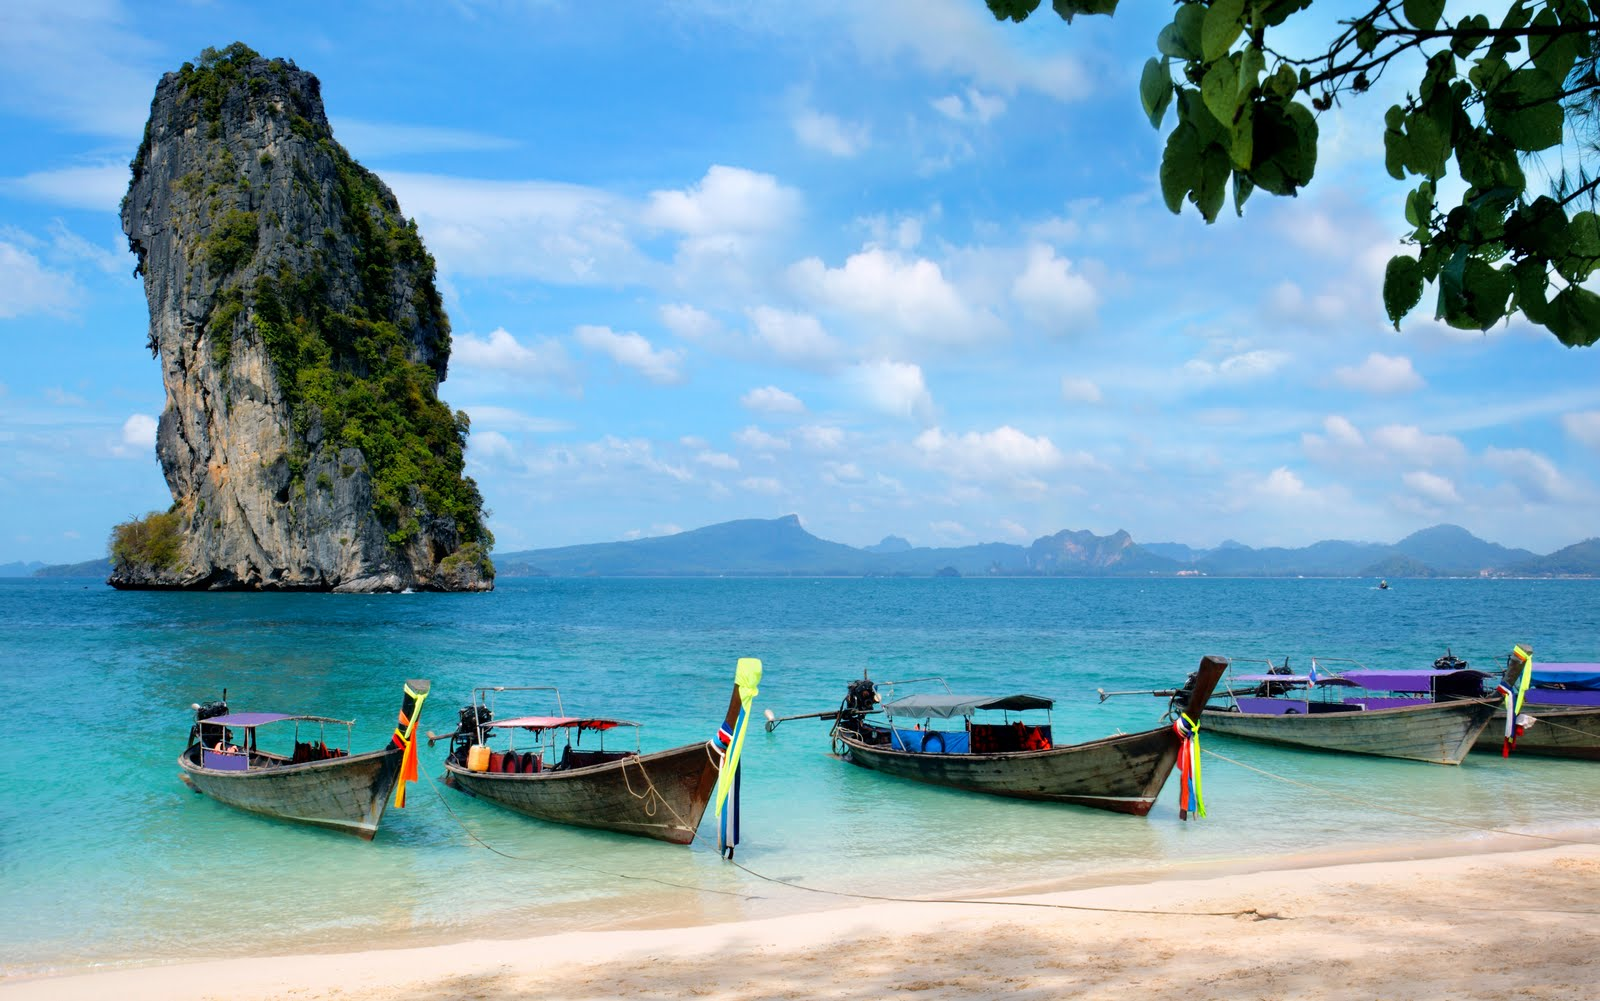 tourism in thailand Pattaya beach- thailand tourism statistics for 2015 in december powerhouse development published an article about traffic being a major indicator that tourism was again on the rise for pattaya beach.